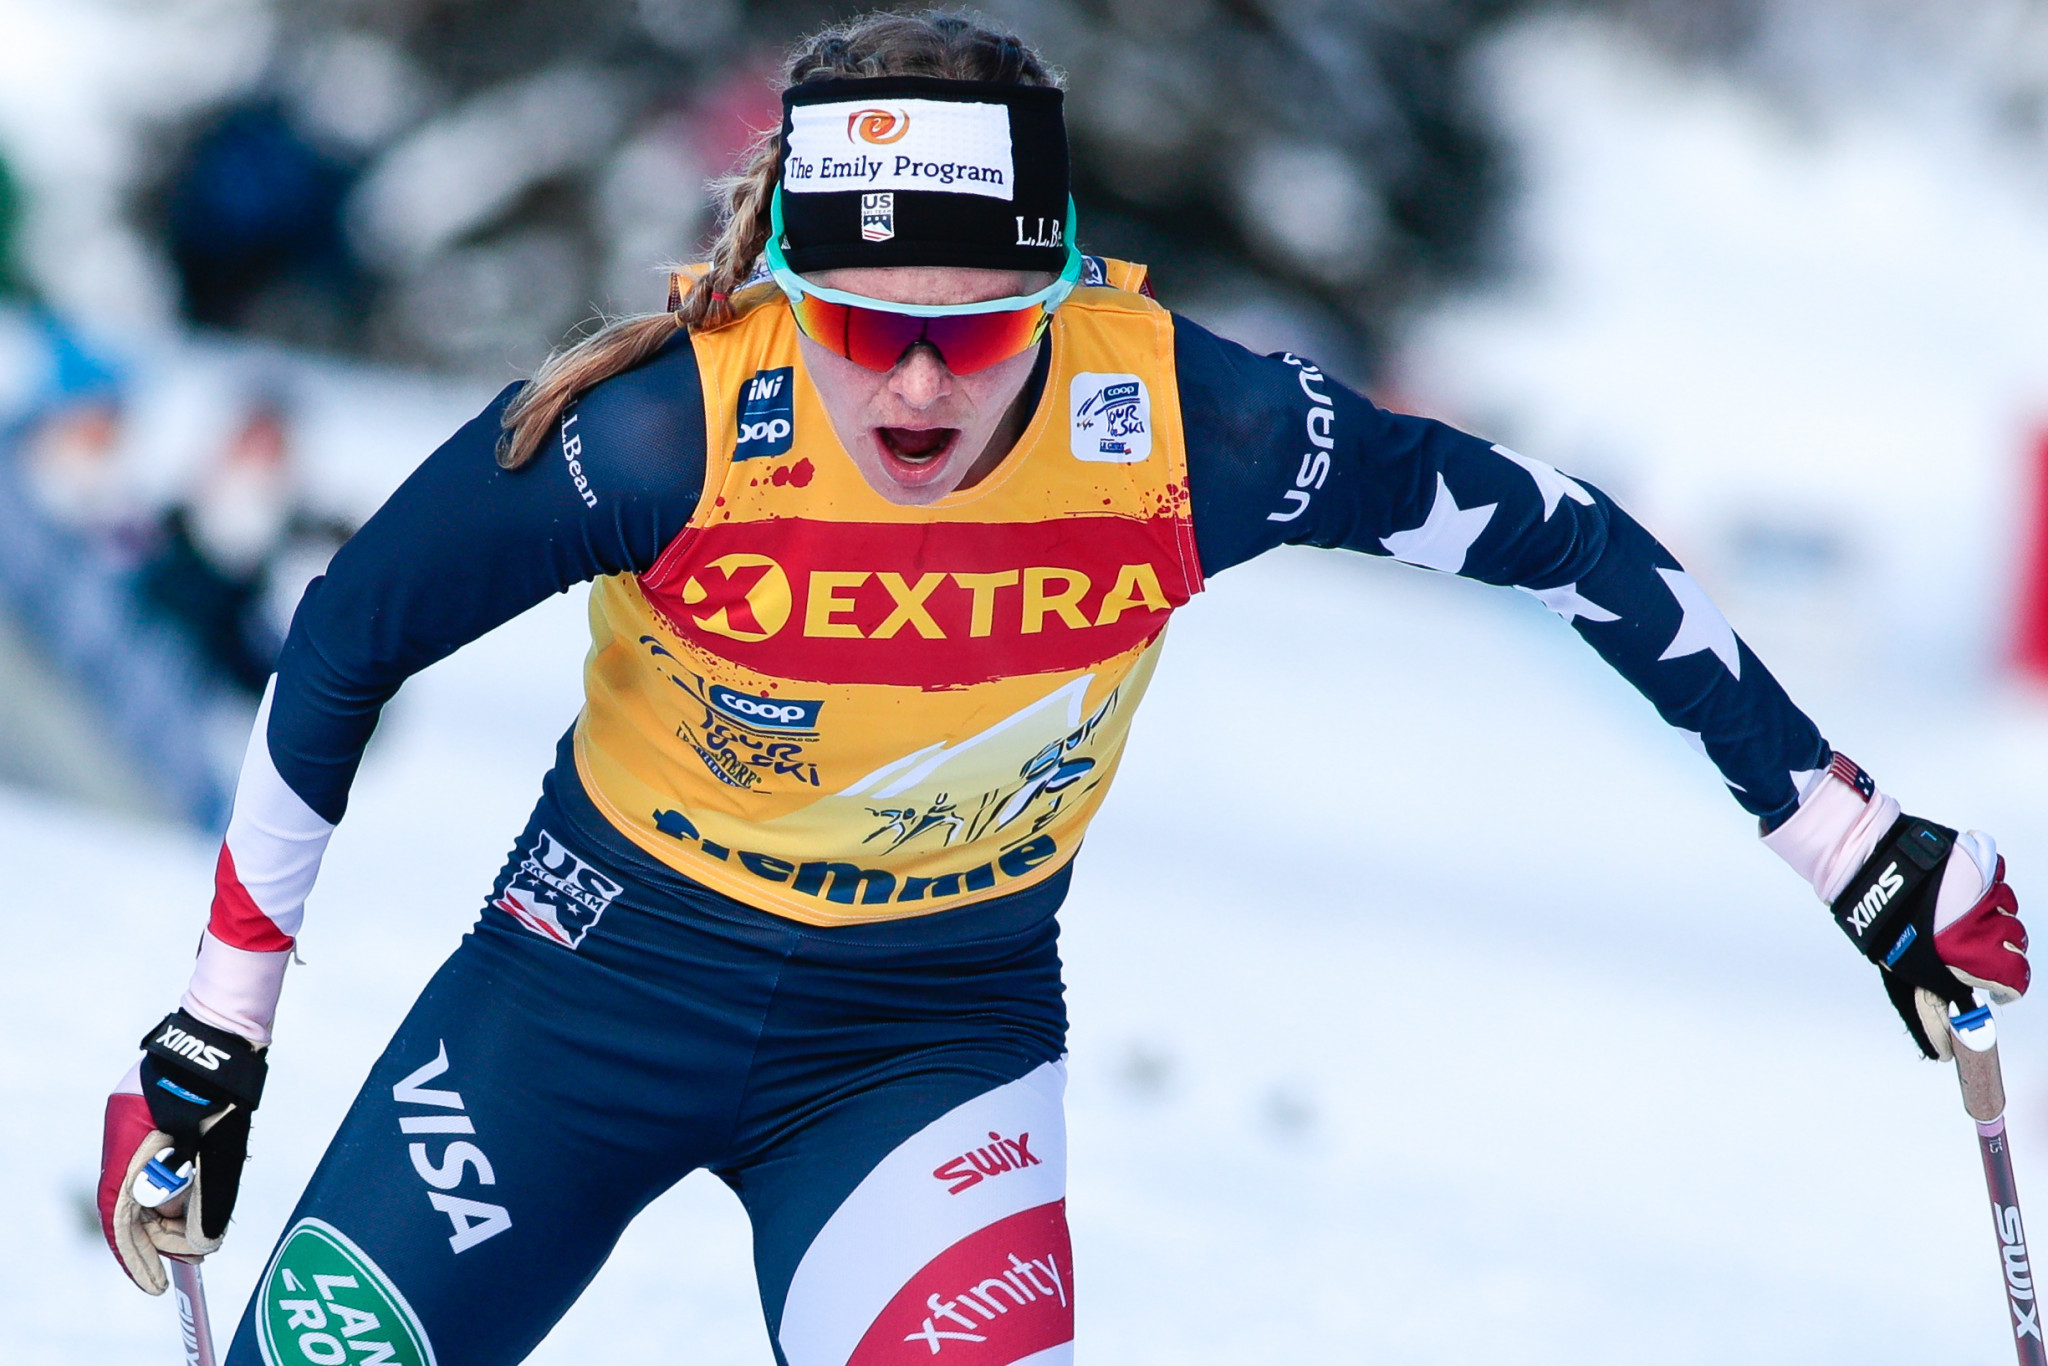 Jessie Diggins is aiming for her first individual title at the Nordic World Ski Championships ©Getty Images